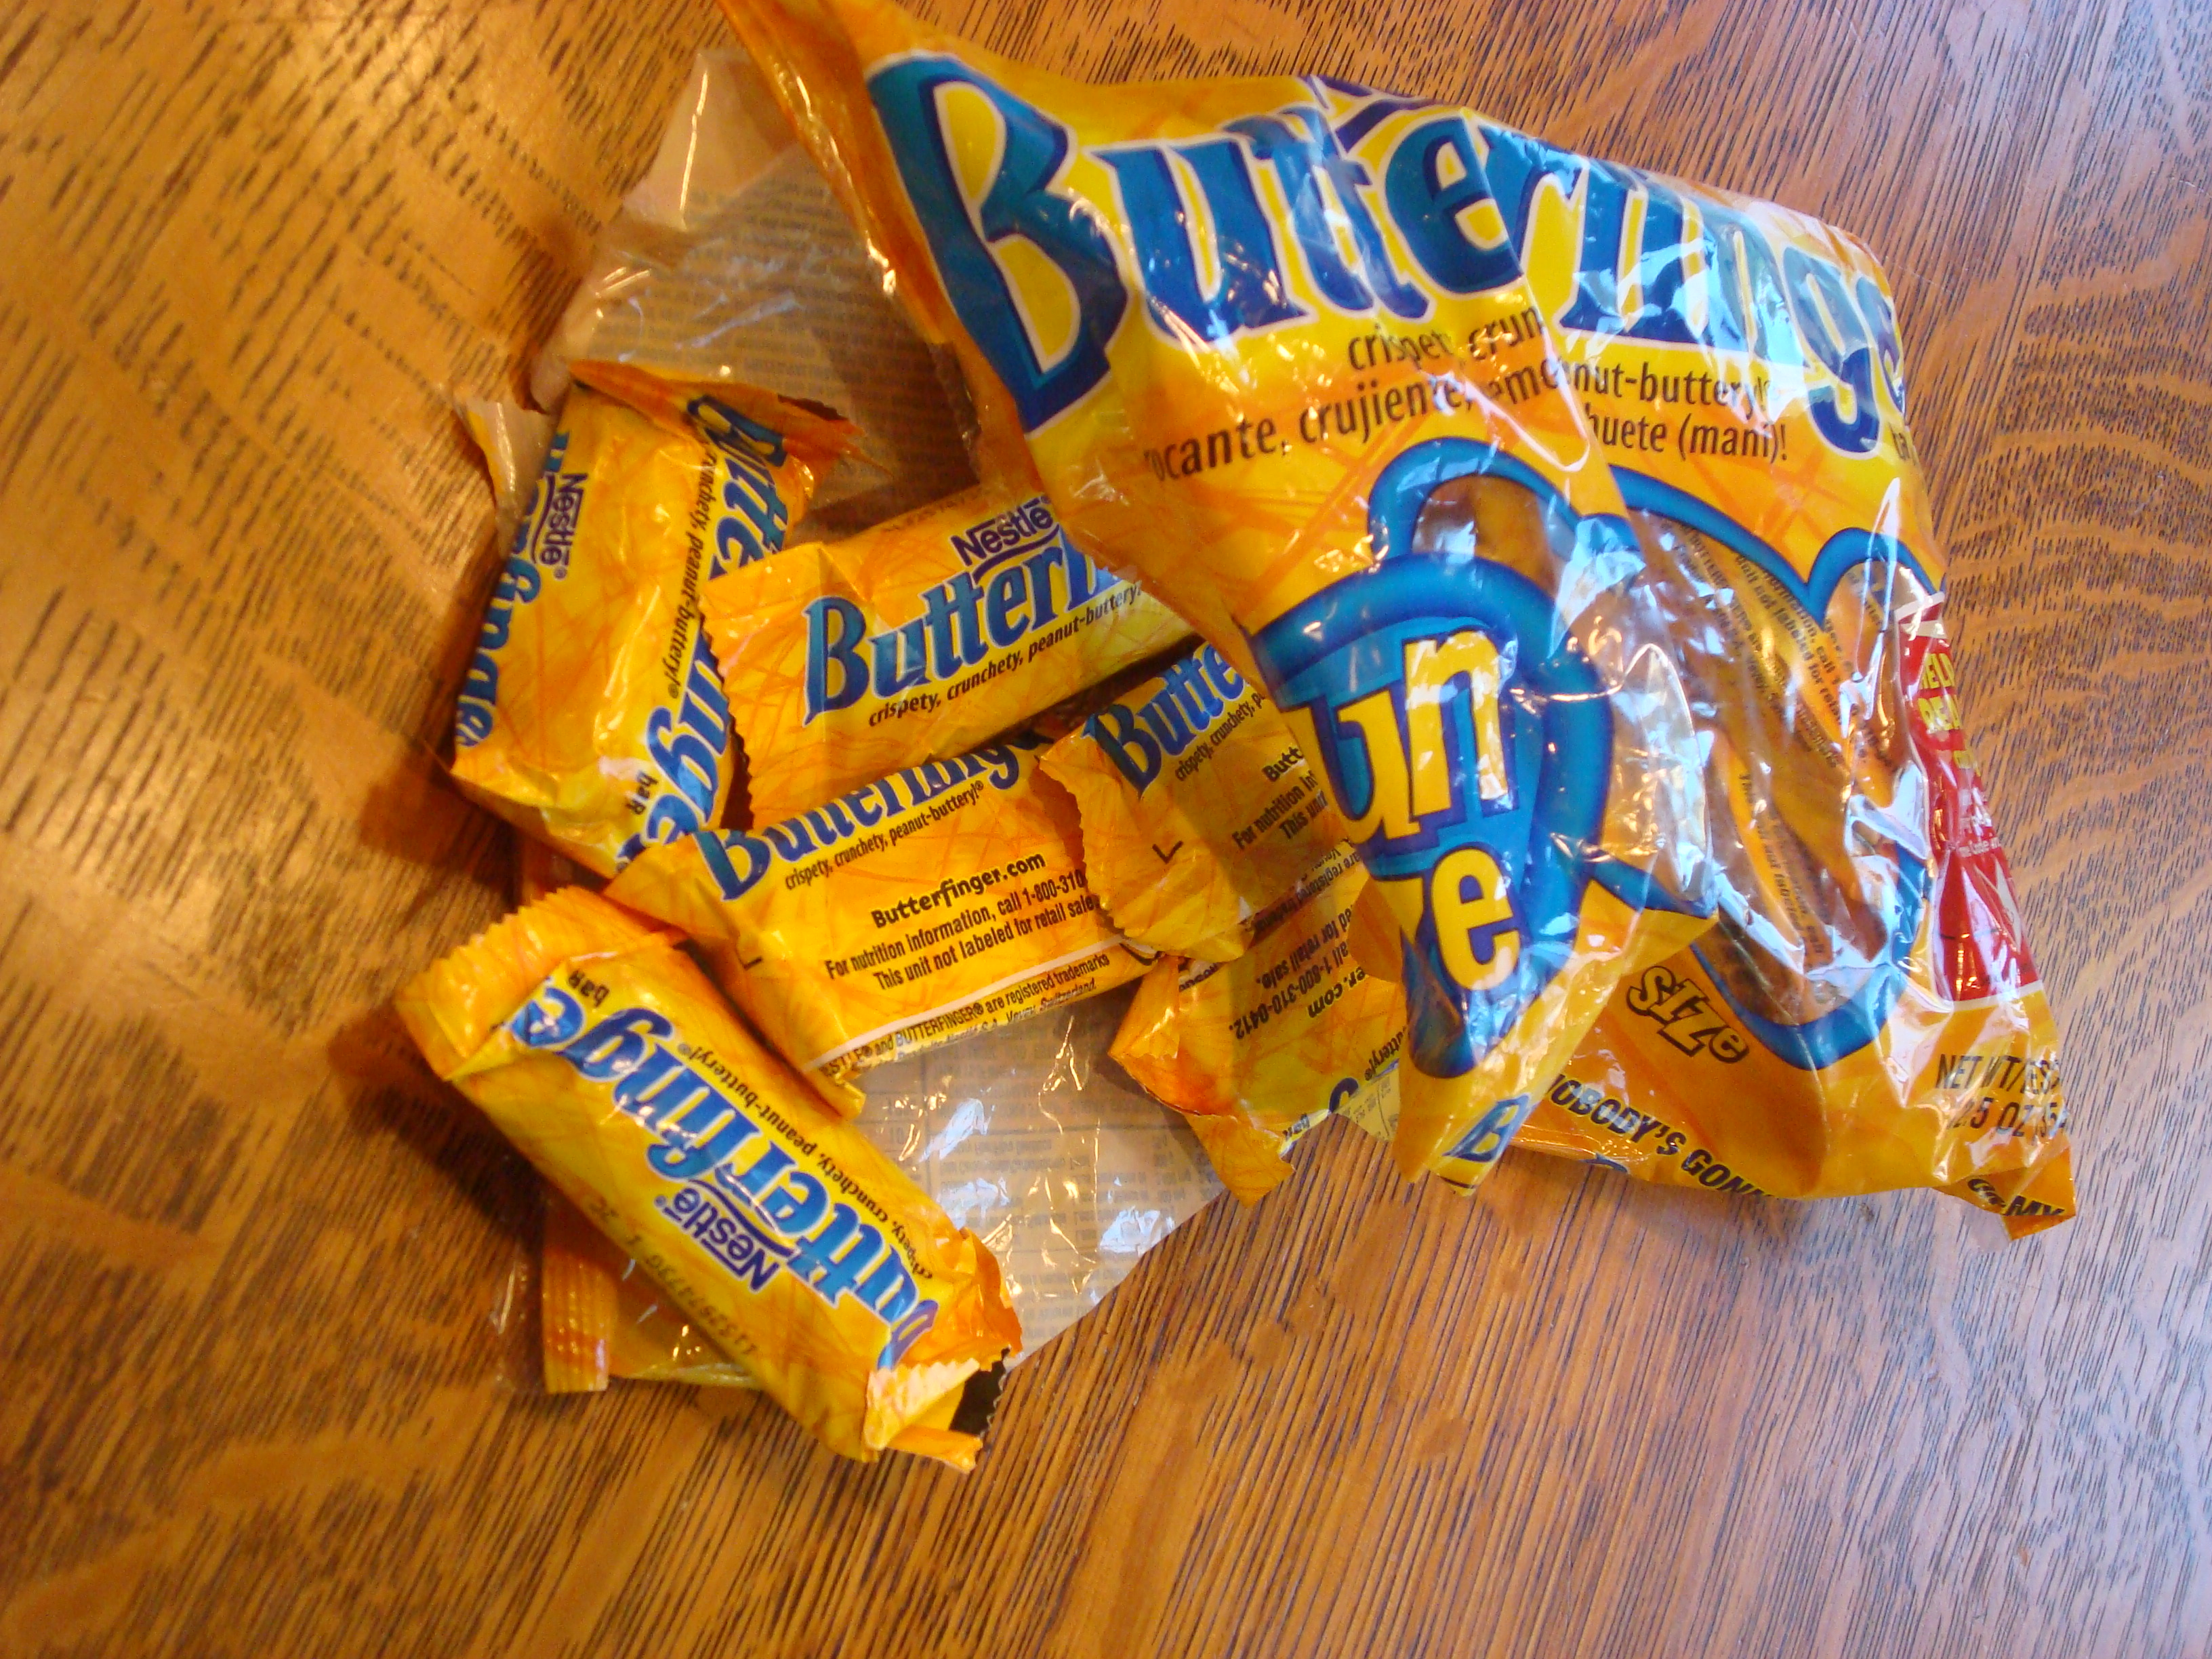 One year of blogging, thirty years of Butterfingers, and a Happy Halloween